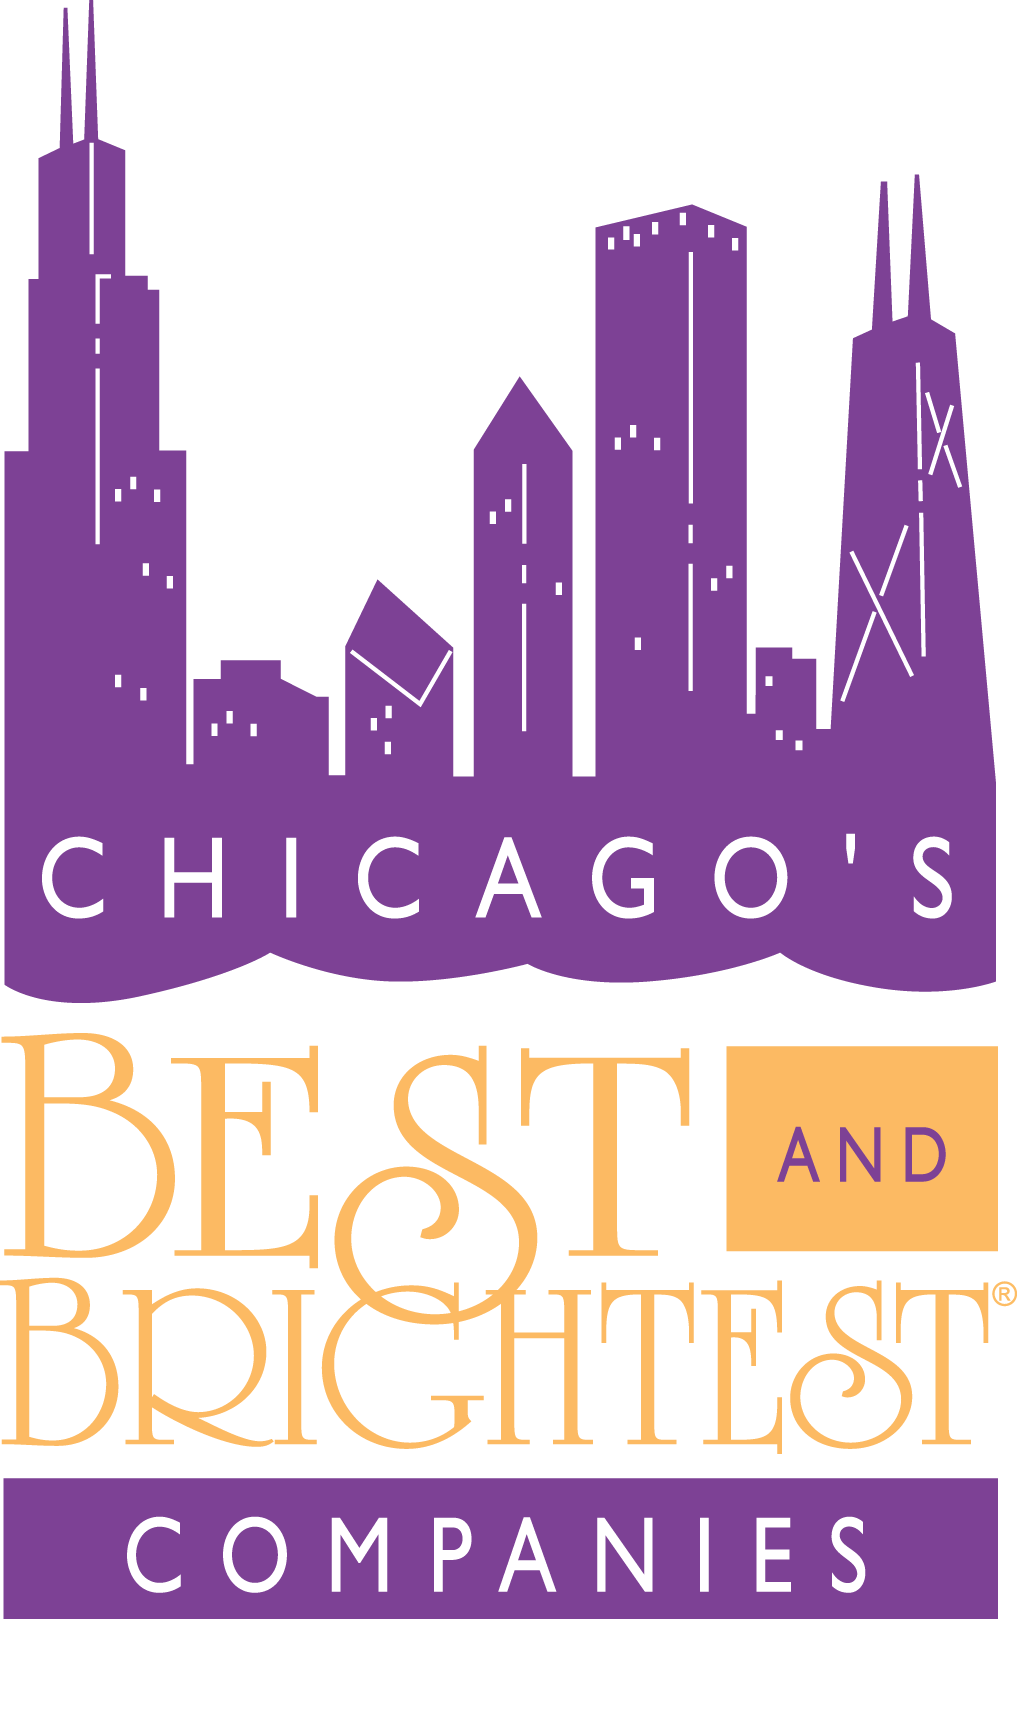 Switchfast named one of Chicago's Best and Brightest Companies to Work For® in 2018